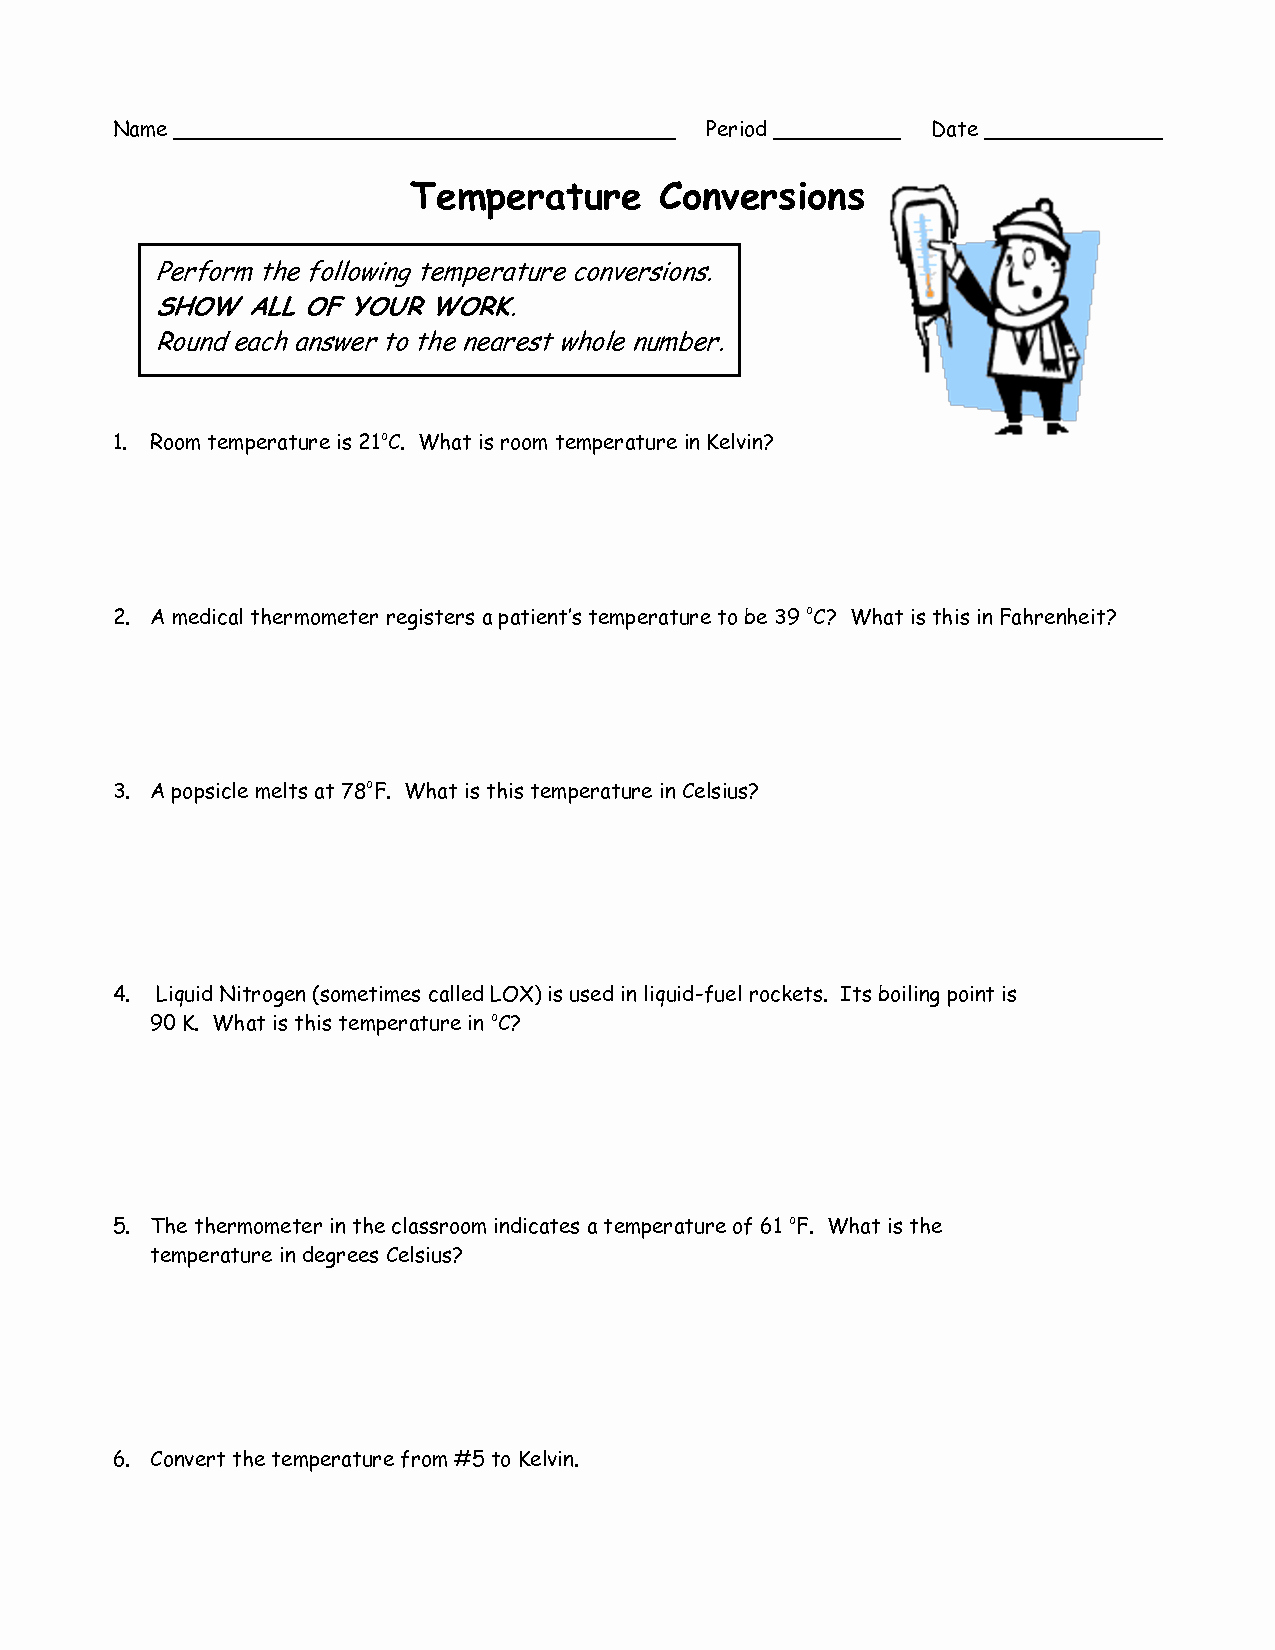 Temperature Conversion Worksheet Answer Key Awesome 13 Best Of Kelvin Temperature Conversion Worksheet